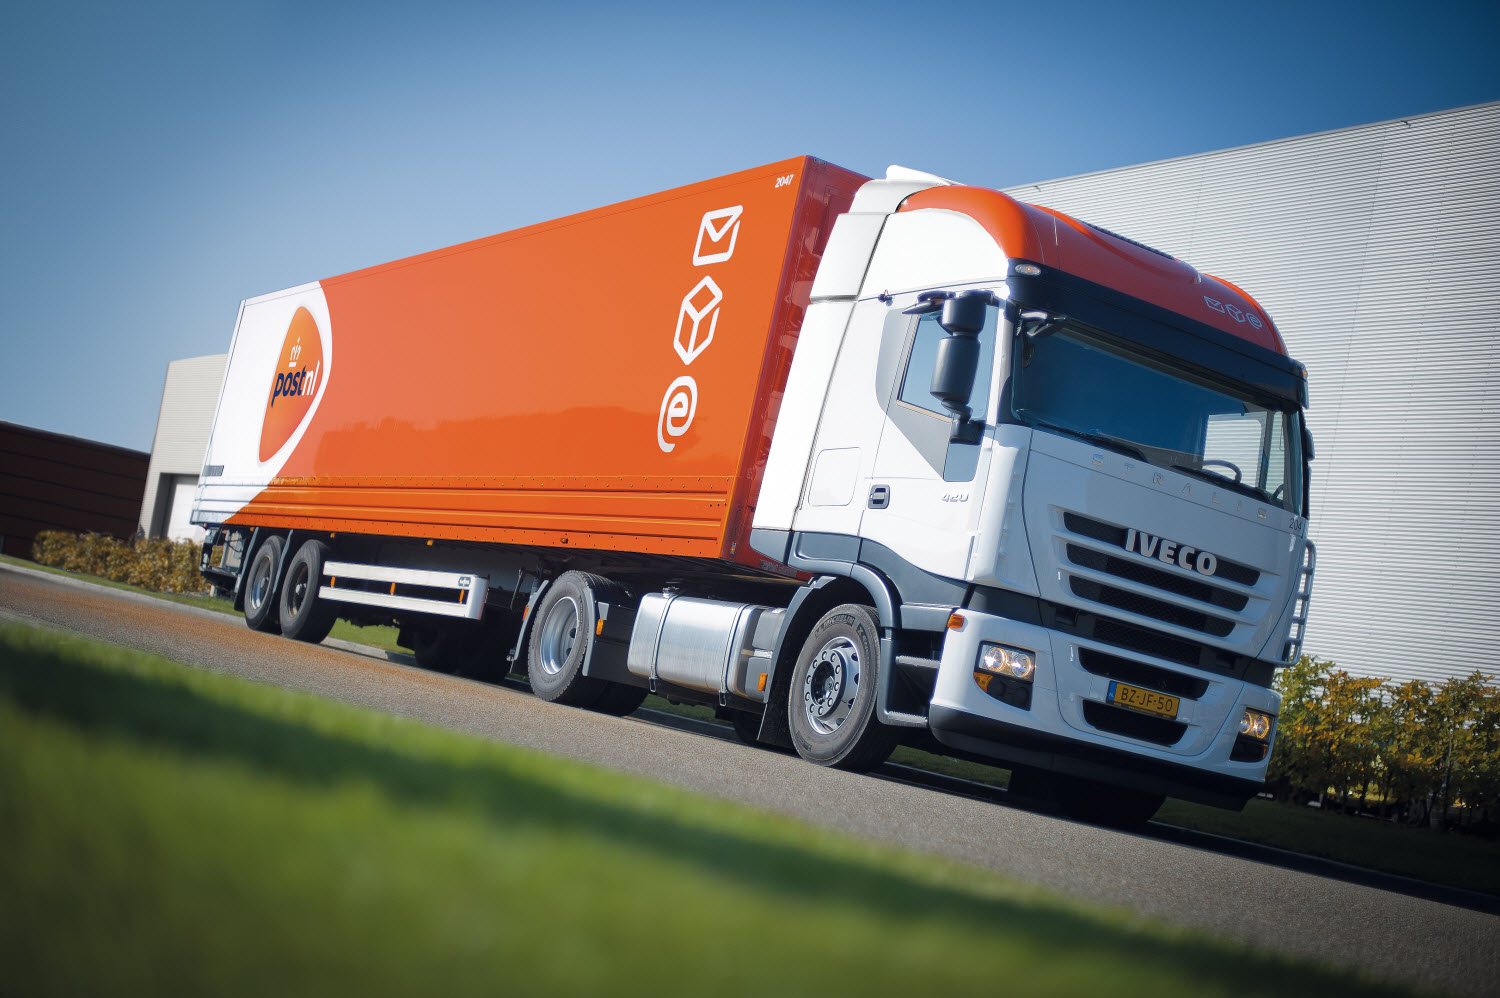 PostNL-truck-at-speed_tcm10-15319